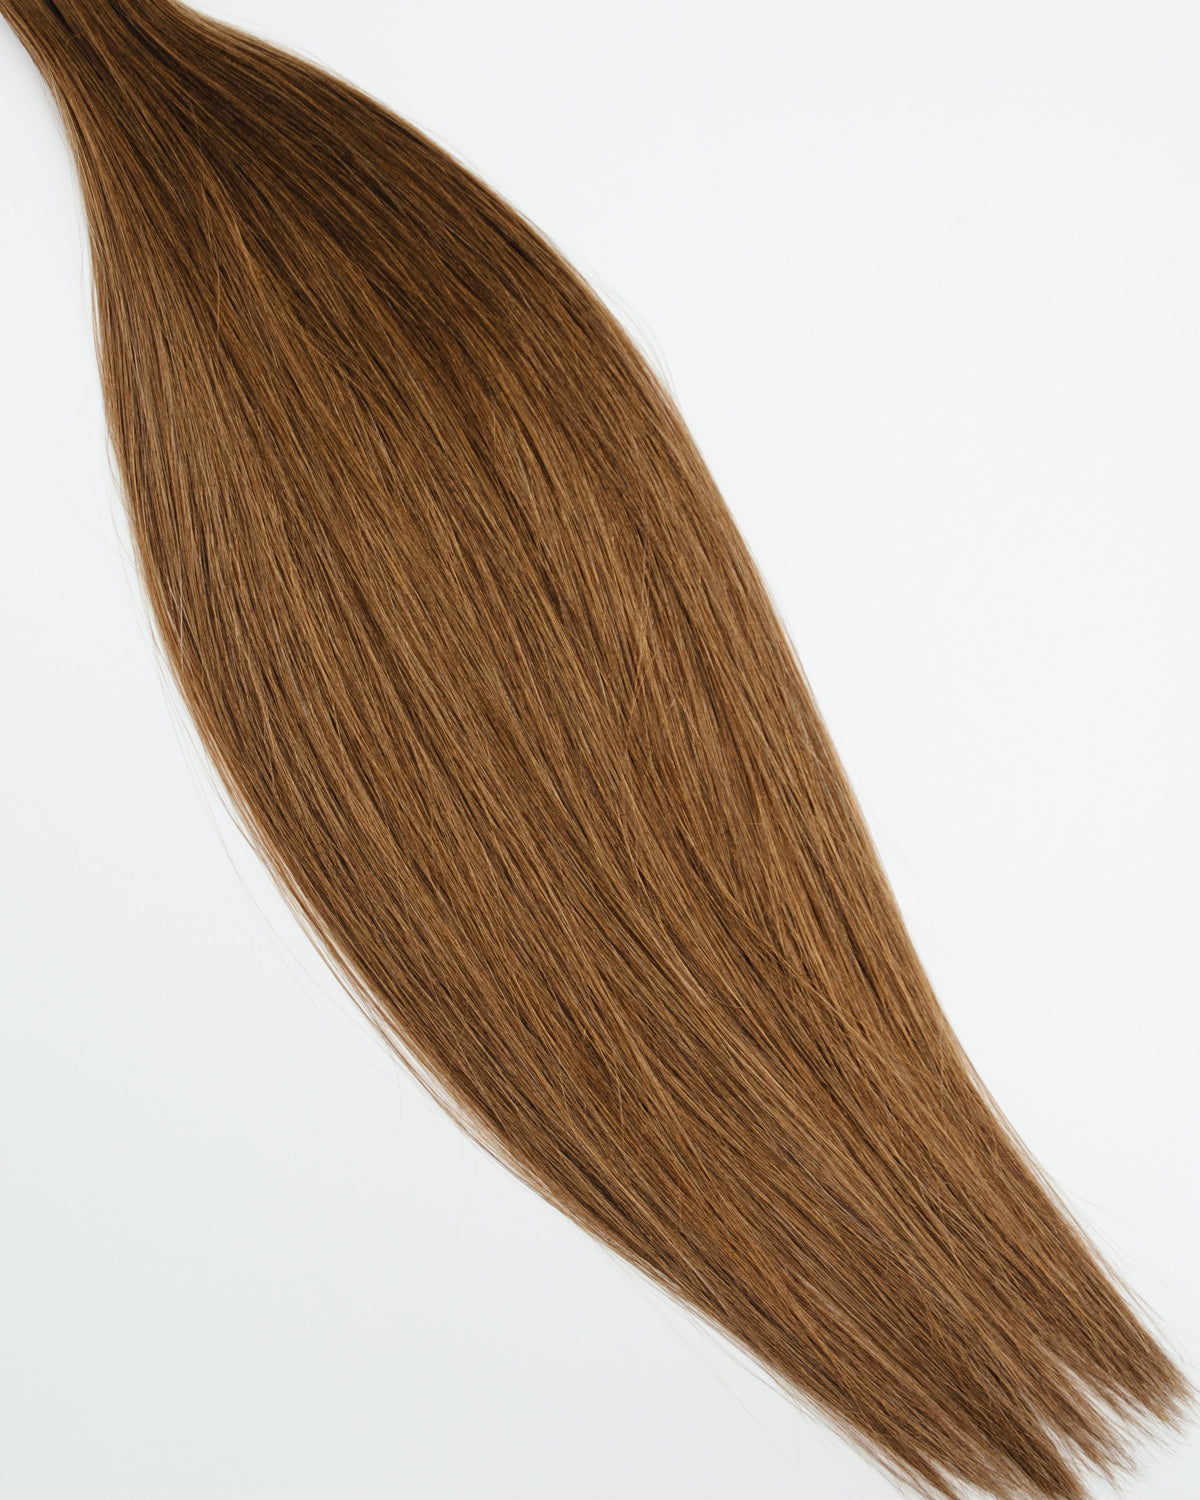 Laced Hair Tape-In Extensions #5 (Caramel)